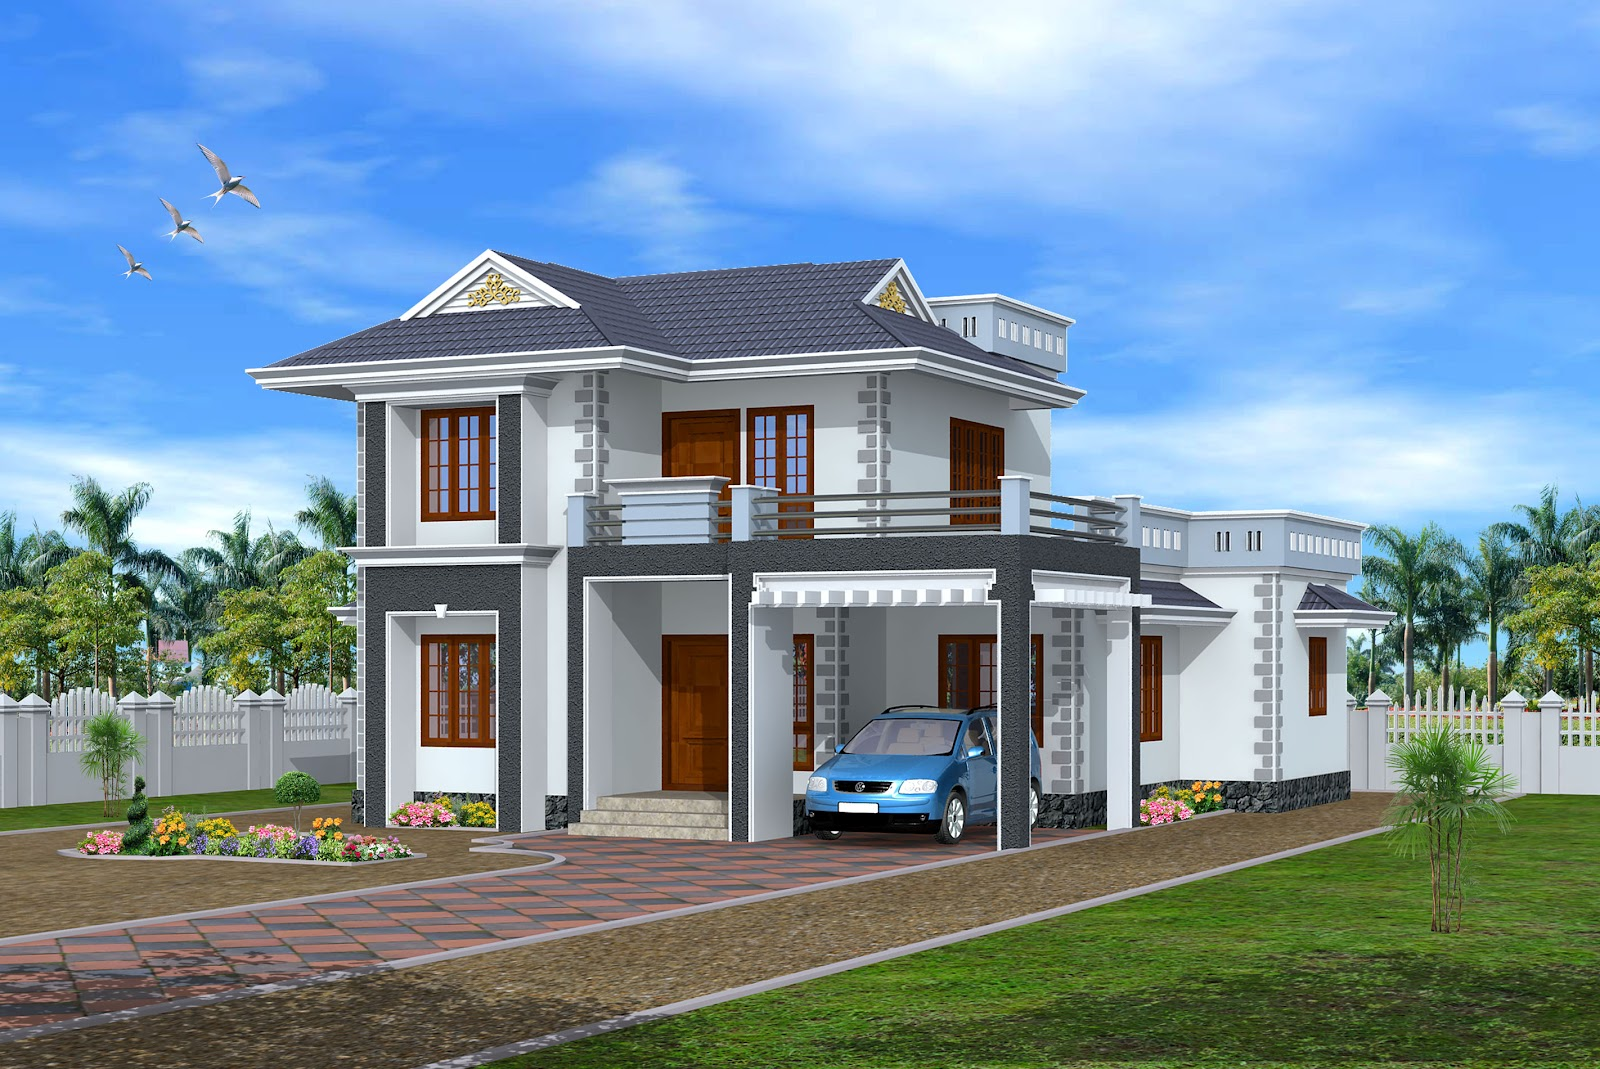 New home designs latest modern homes exterior designs views Hd home design 3d